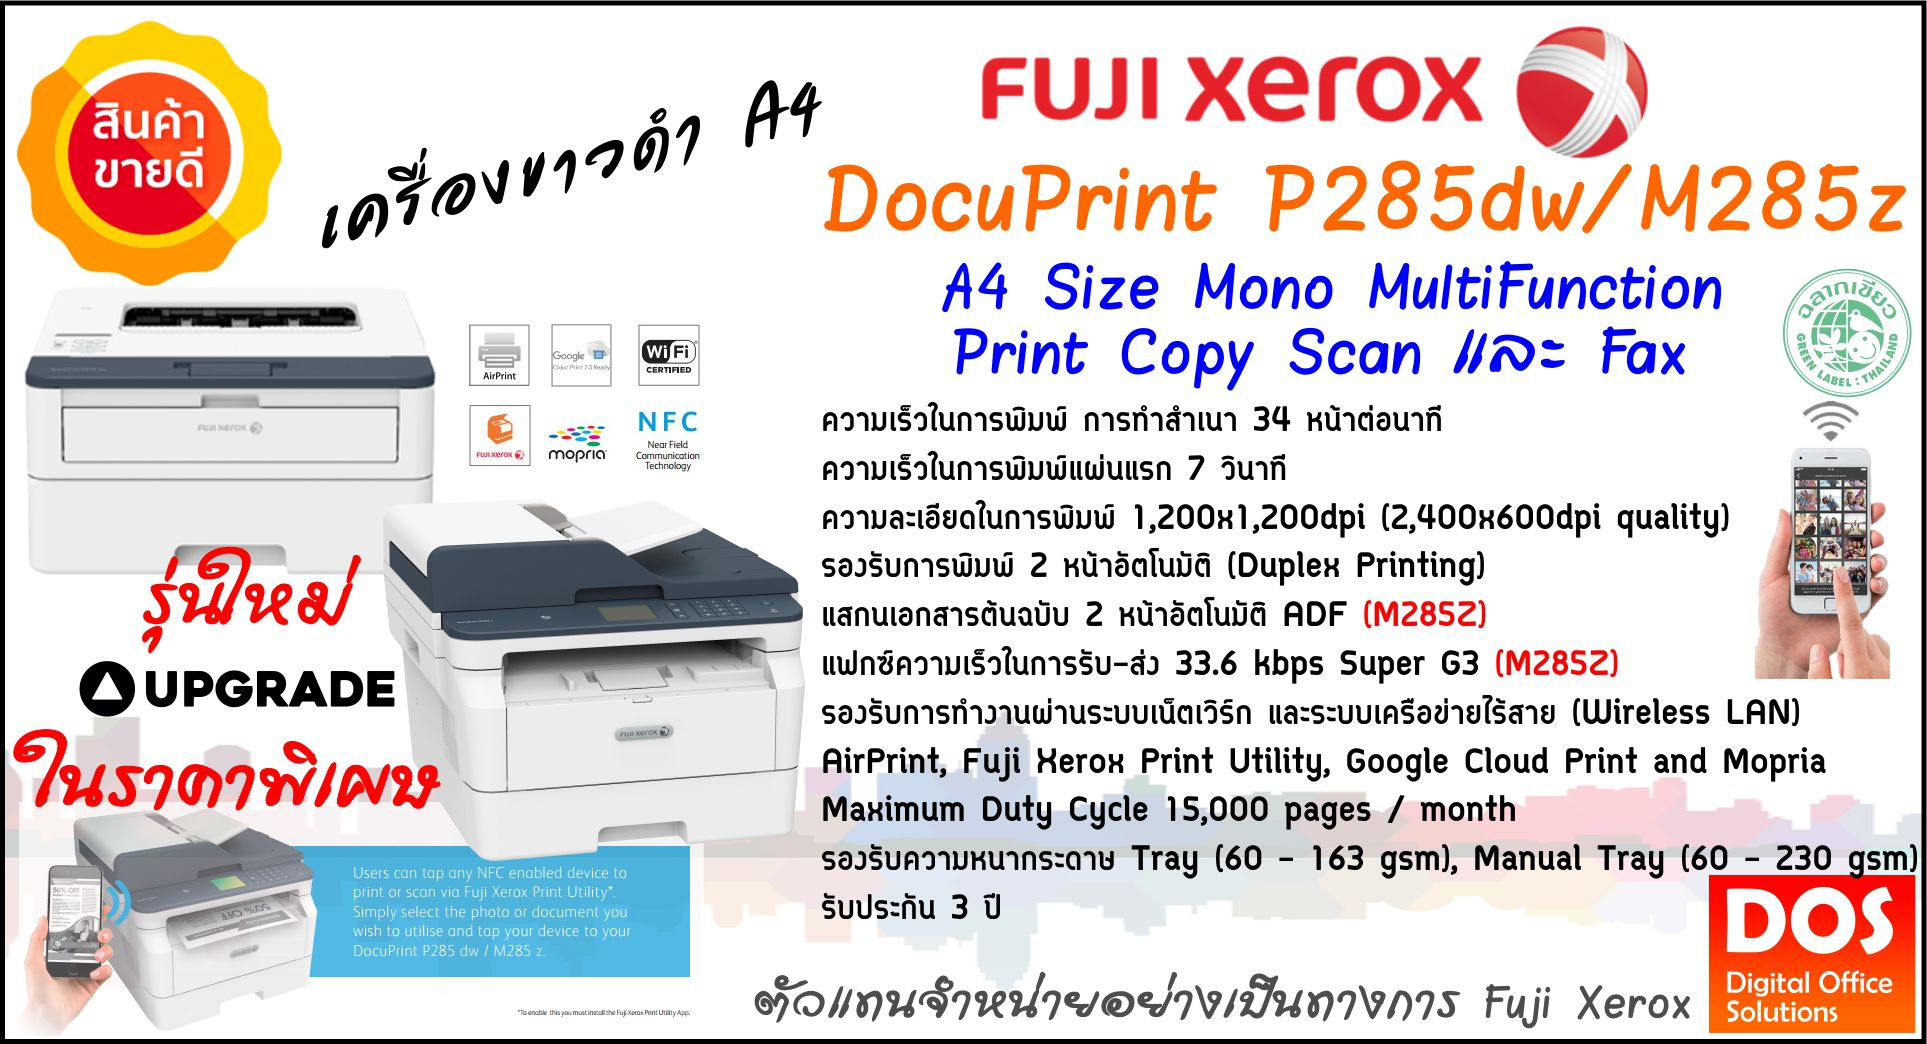 Fuji Xerox DocuPrint P285dw/M285z – Authorized dealer